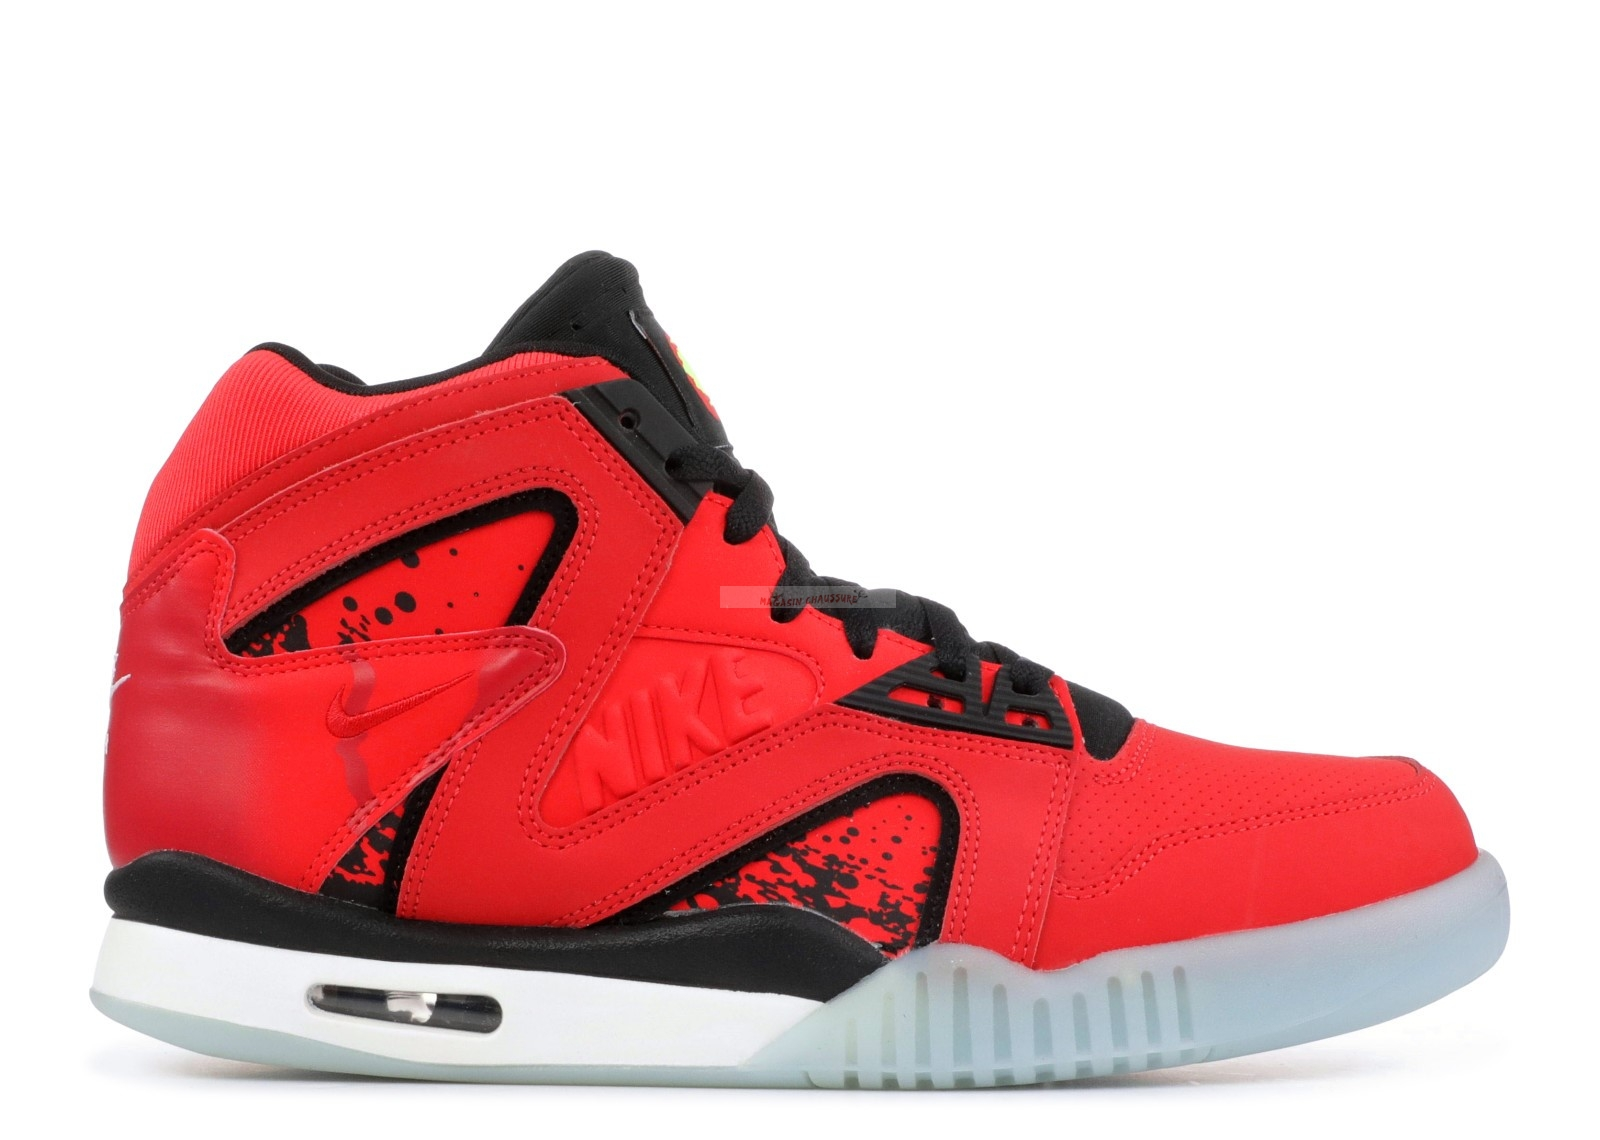 Air Tech Challenge Hybrid Rouge Chaussure de Basket